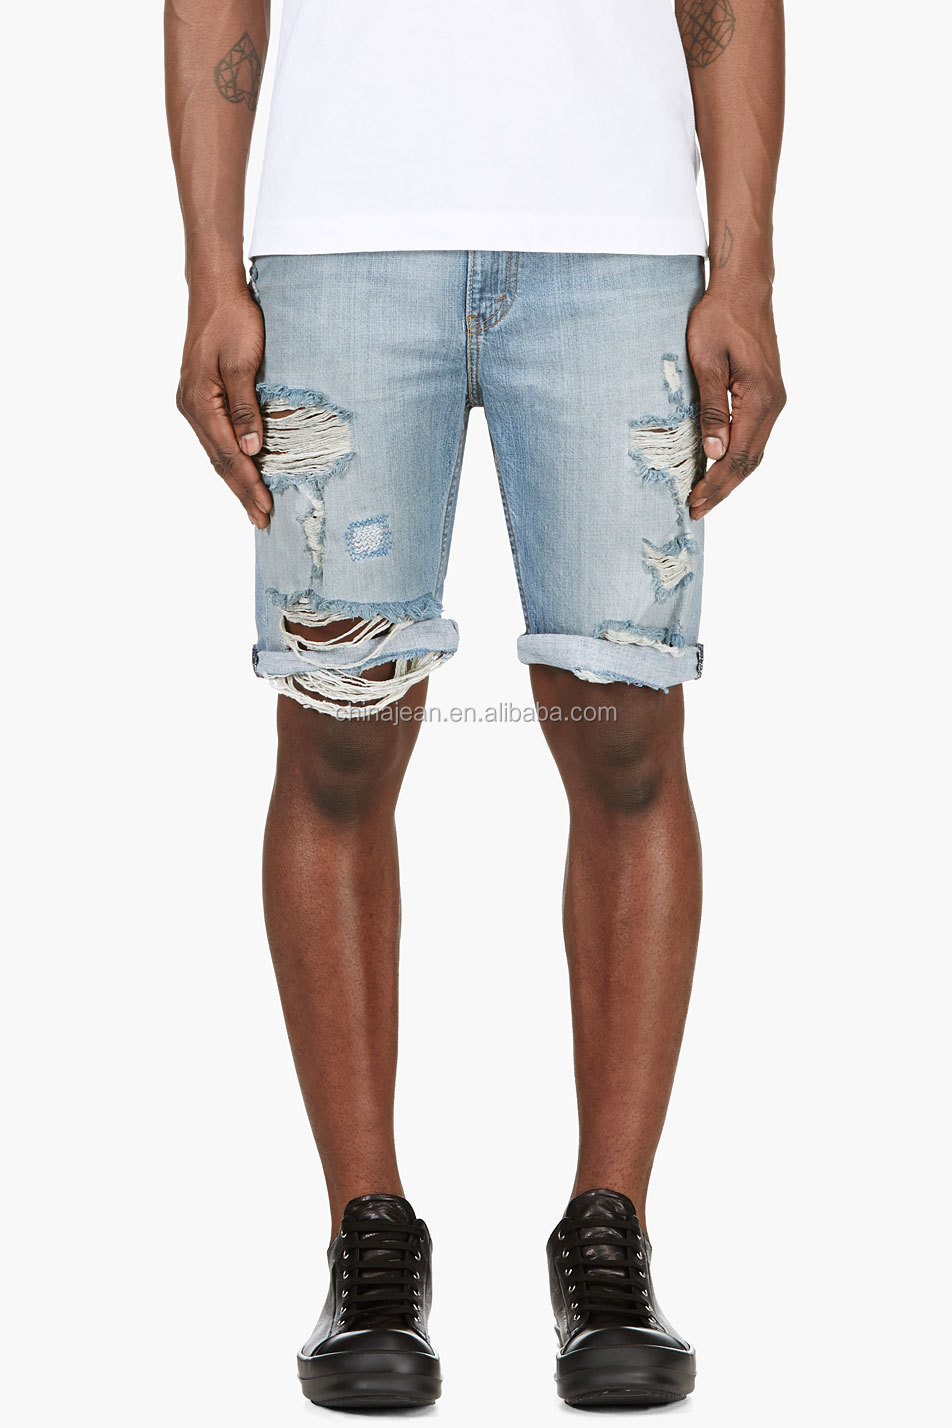 2015 Fashion New Destroyed Jeans Shorts Men Blue Denim Hot Shorts ...